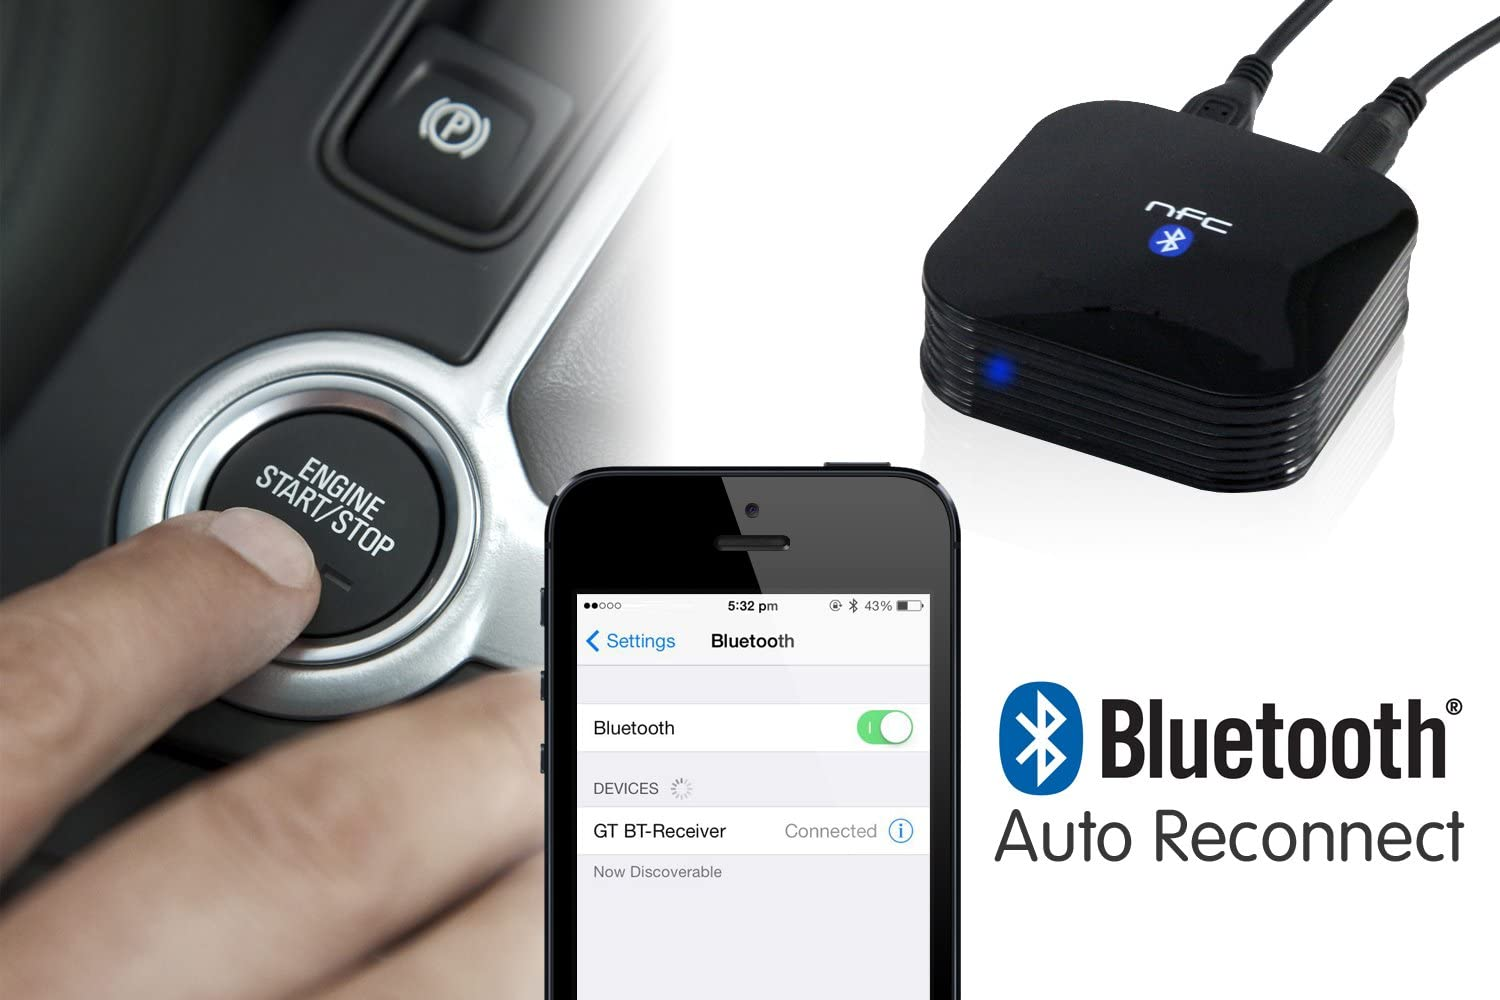 HomeSpot NFC-enabled Wireless Bluetooth Audio Receiver for Car Audio with Bluetooth Auto-Reconnect